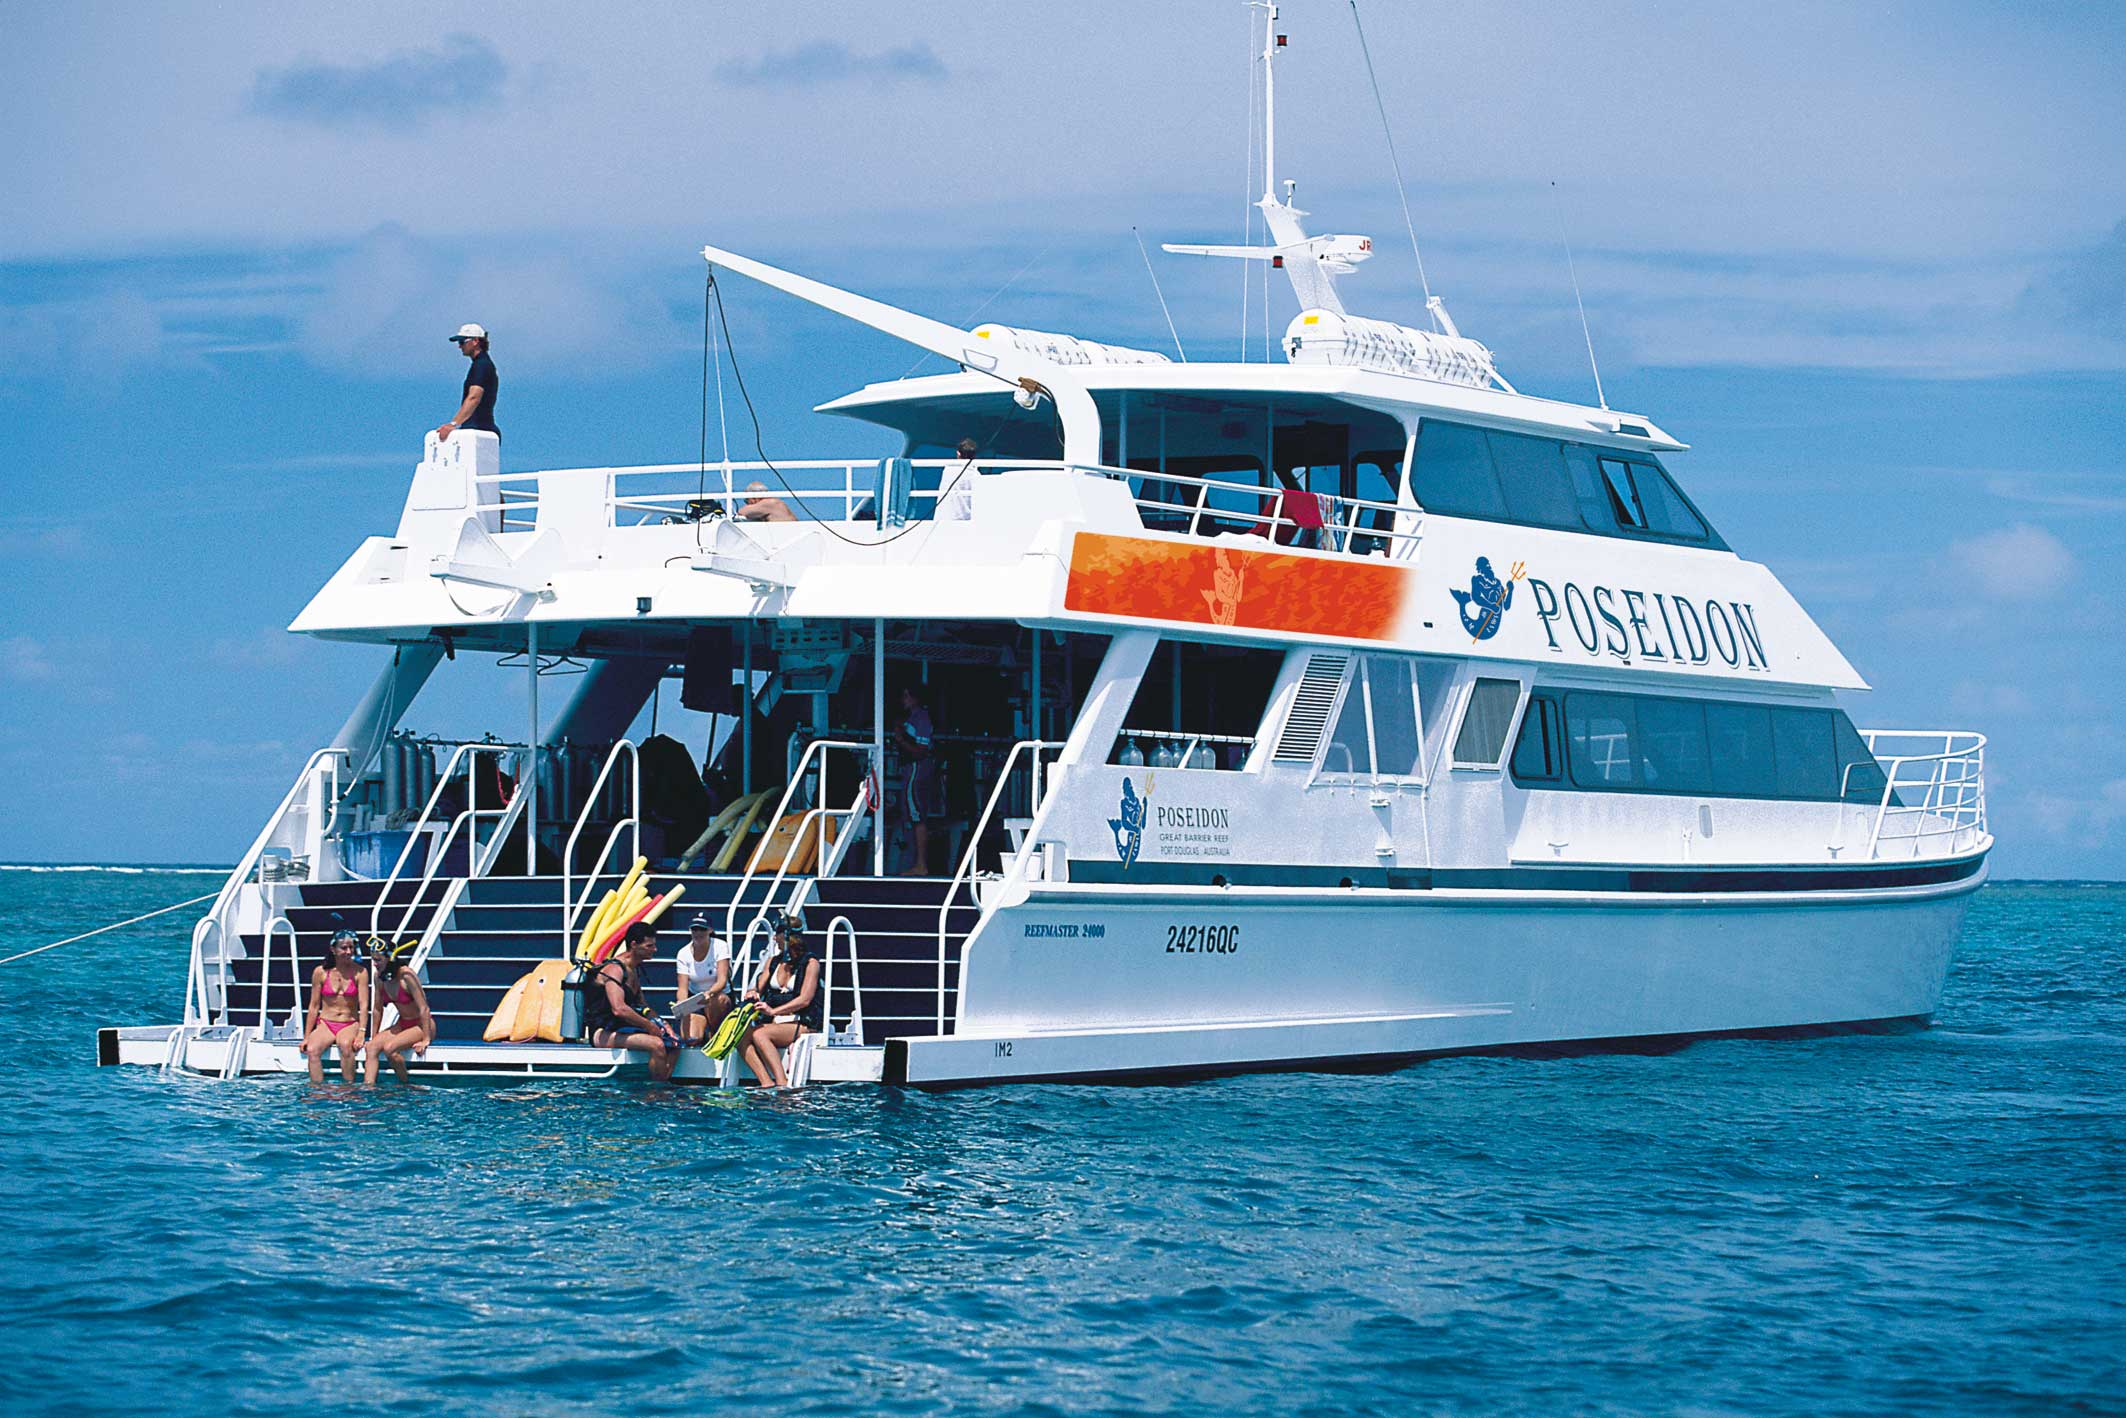 Poseidon Outer Reef Cruise Down Under Tours Down Under Tours